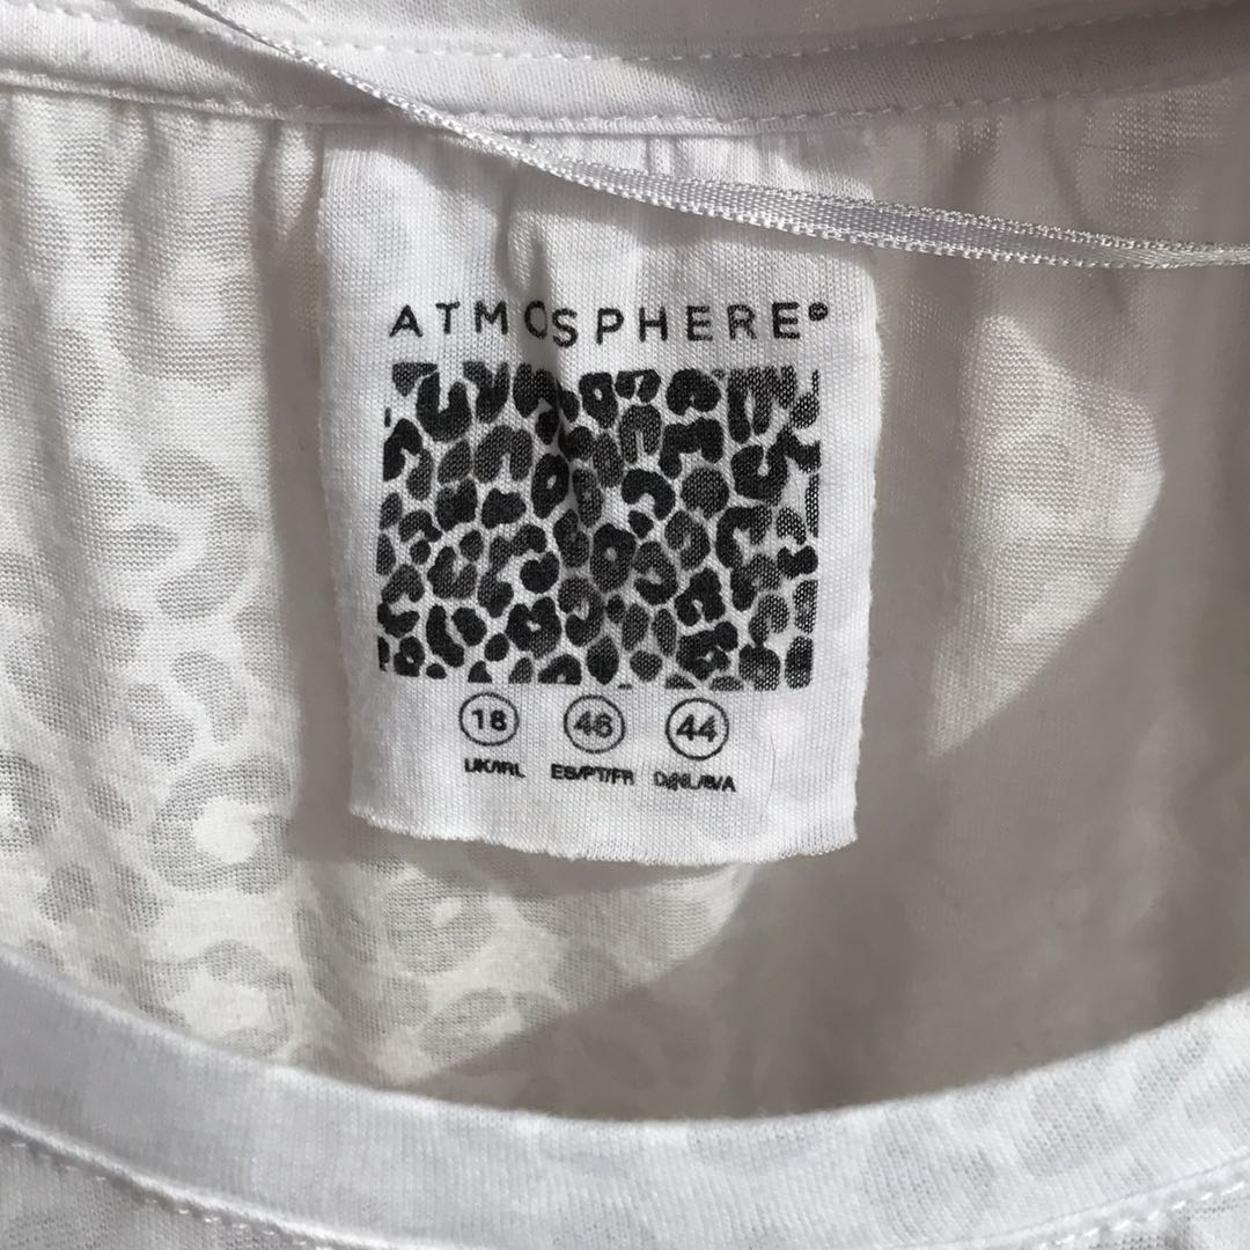 Atmosphere Tshirt